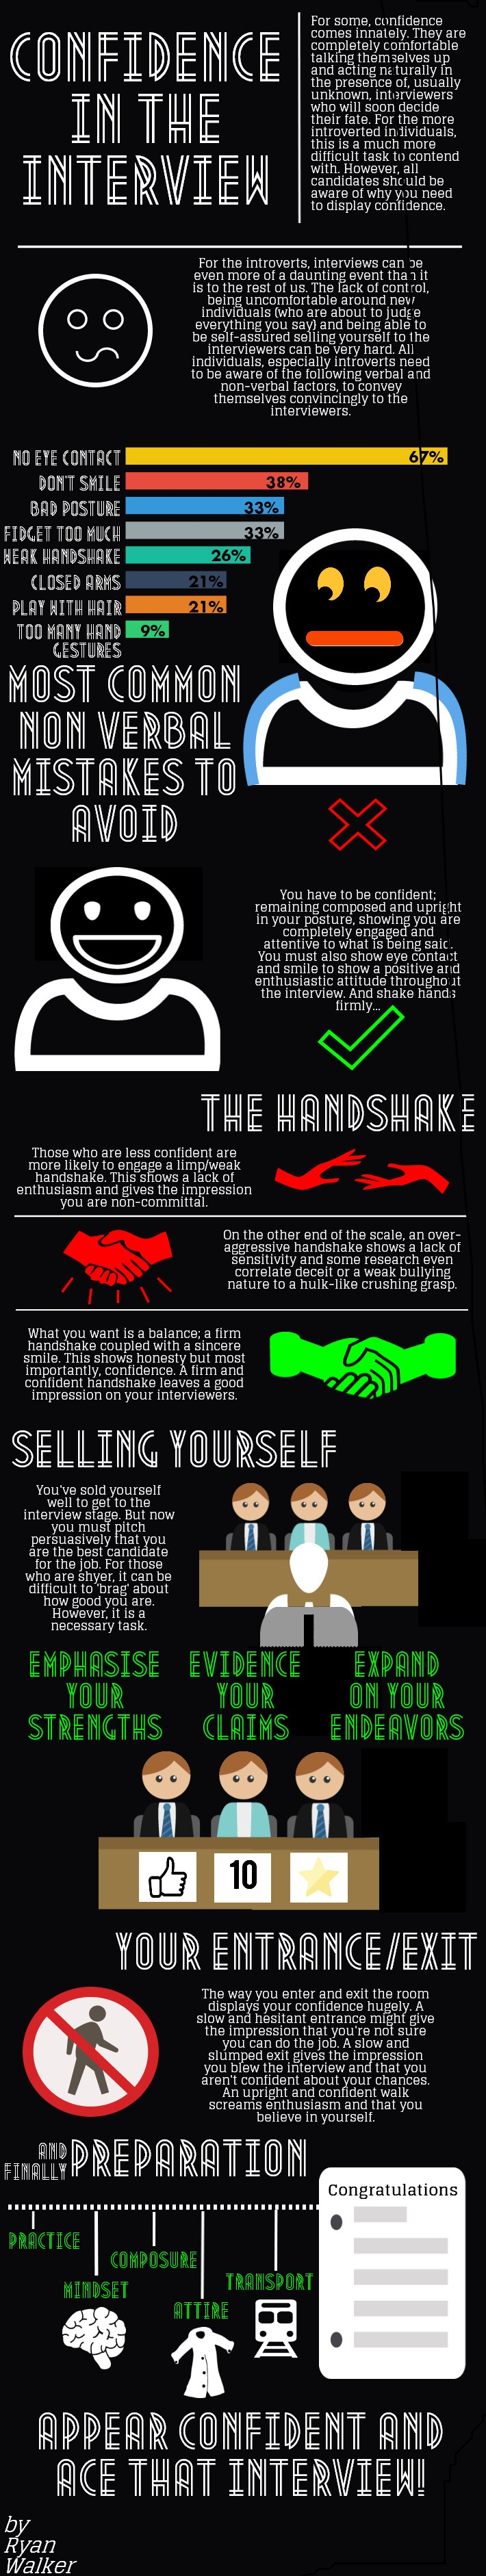 how to be confident in interview infographic